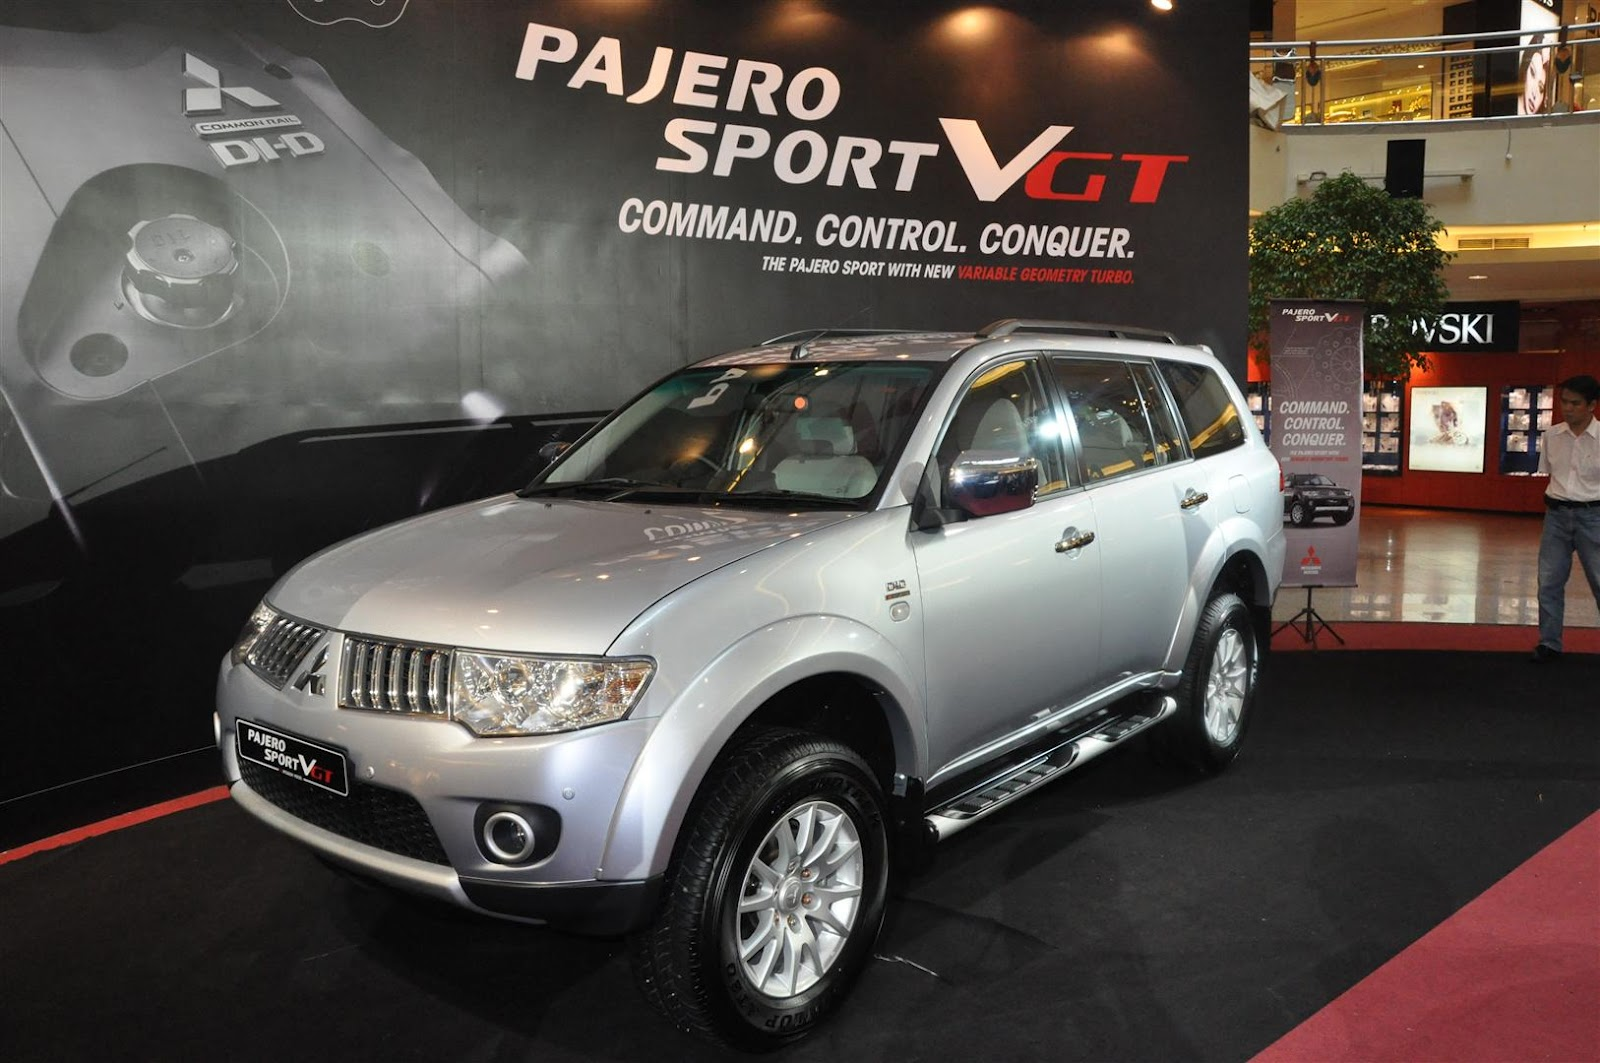 The new Pajero Sport VGT will be sold alongside the Pajero Sport GS